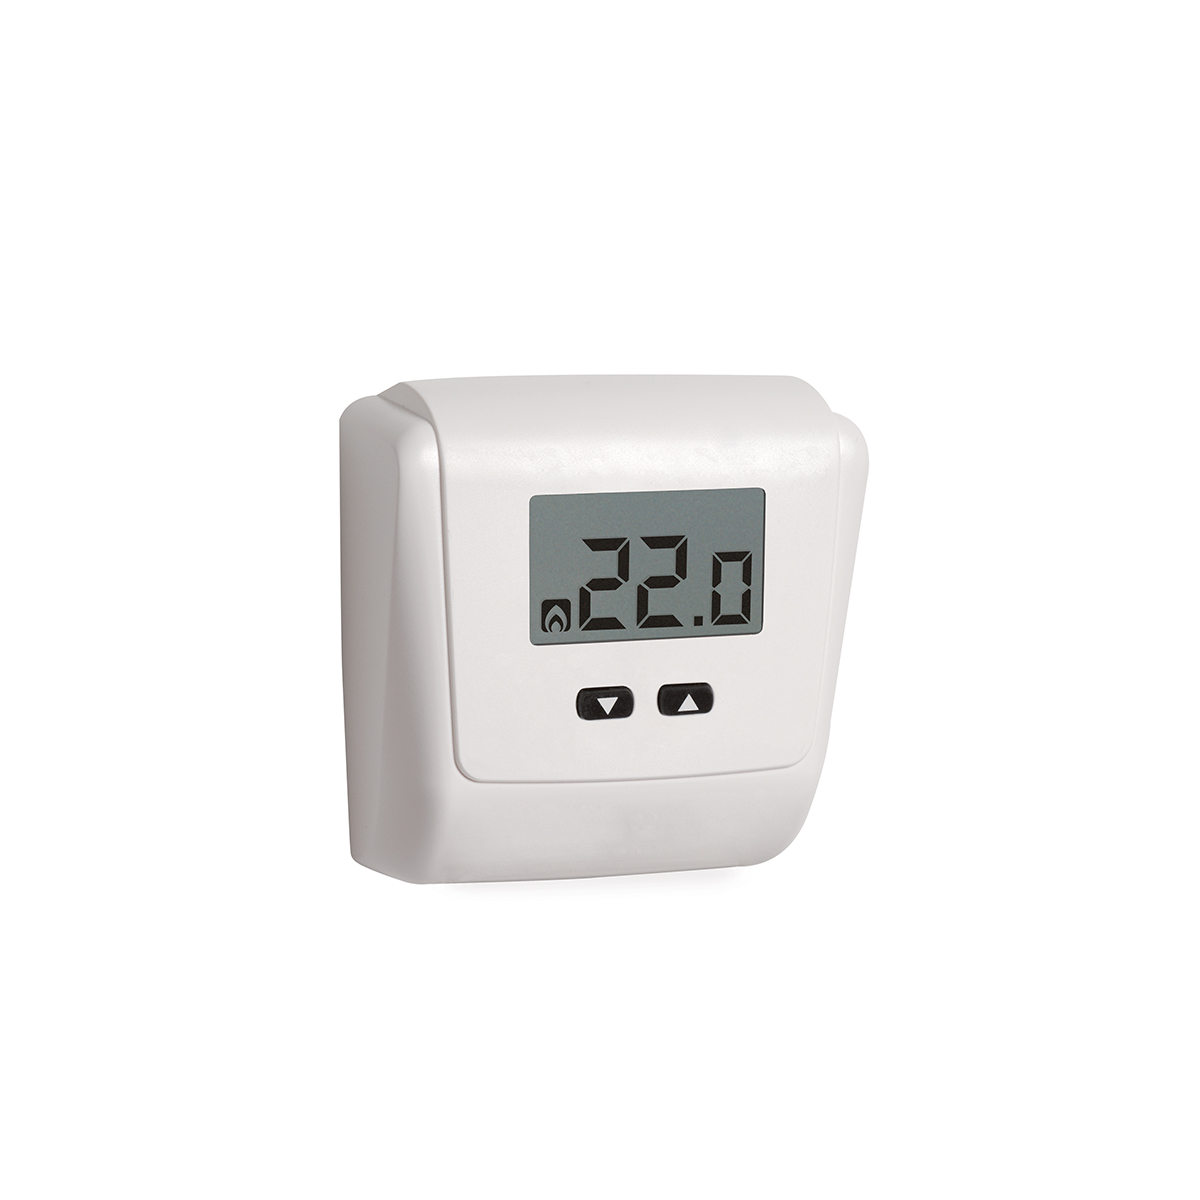 Electronic ambient thermostat with LCD display